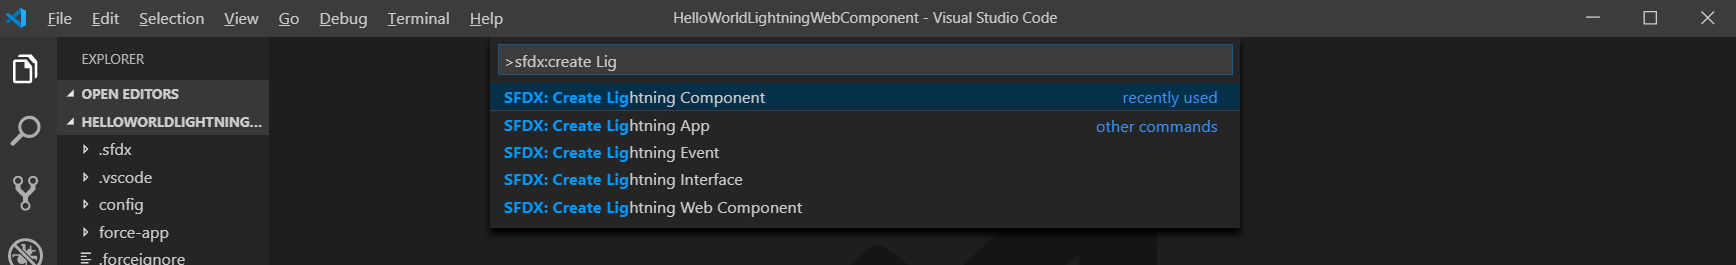 create Simple Lightning Component